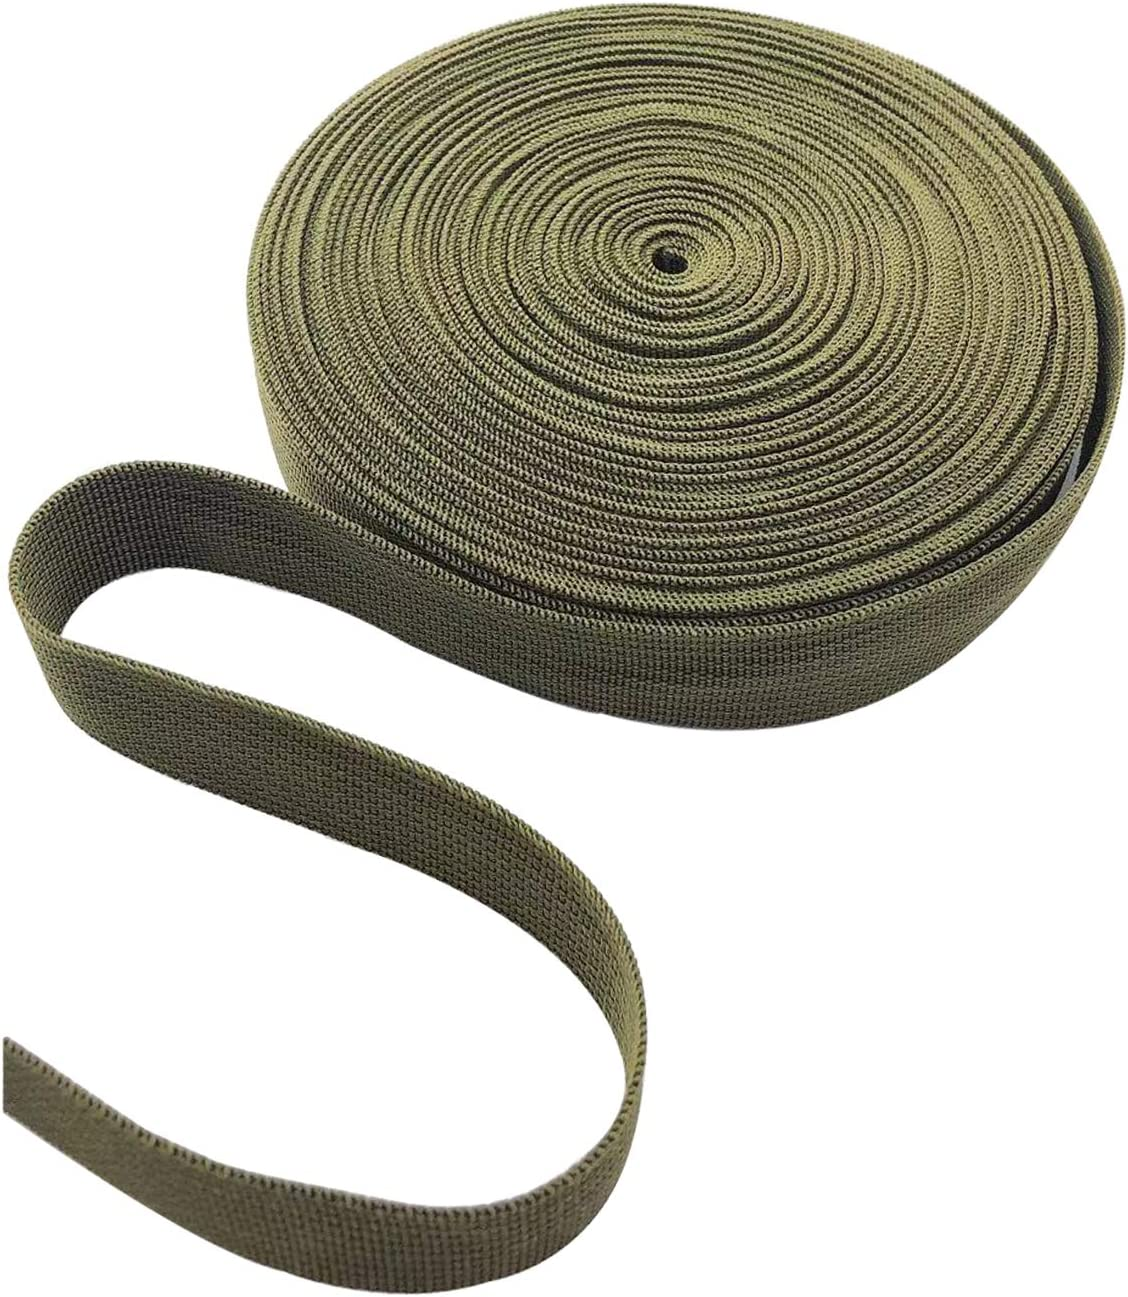 HanyHere 1 Roll 65.6 Feet Tree Tie for Plant Support Garden Strap 1 Inch Width Staking and Guying Material 1,800 Lbs Strength (Army Green) : Patio, Lawn & Garden